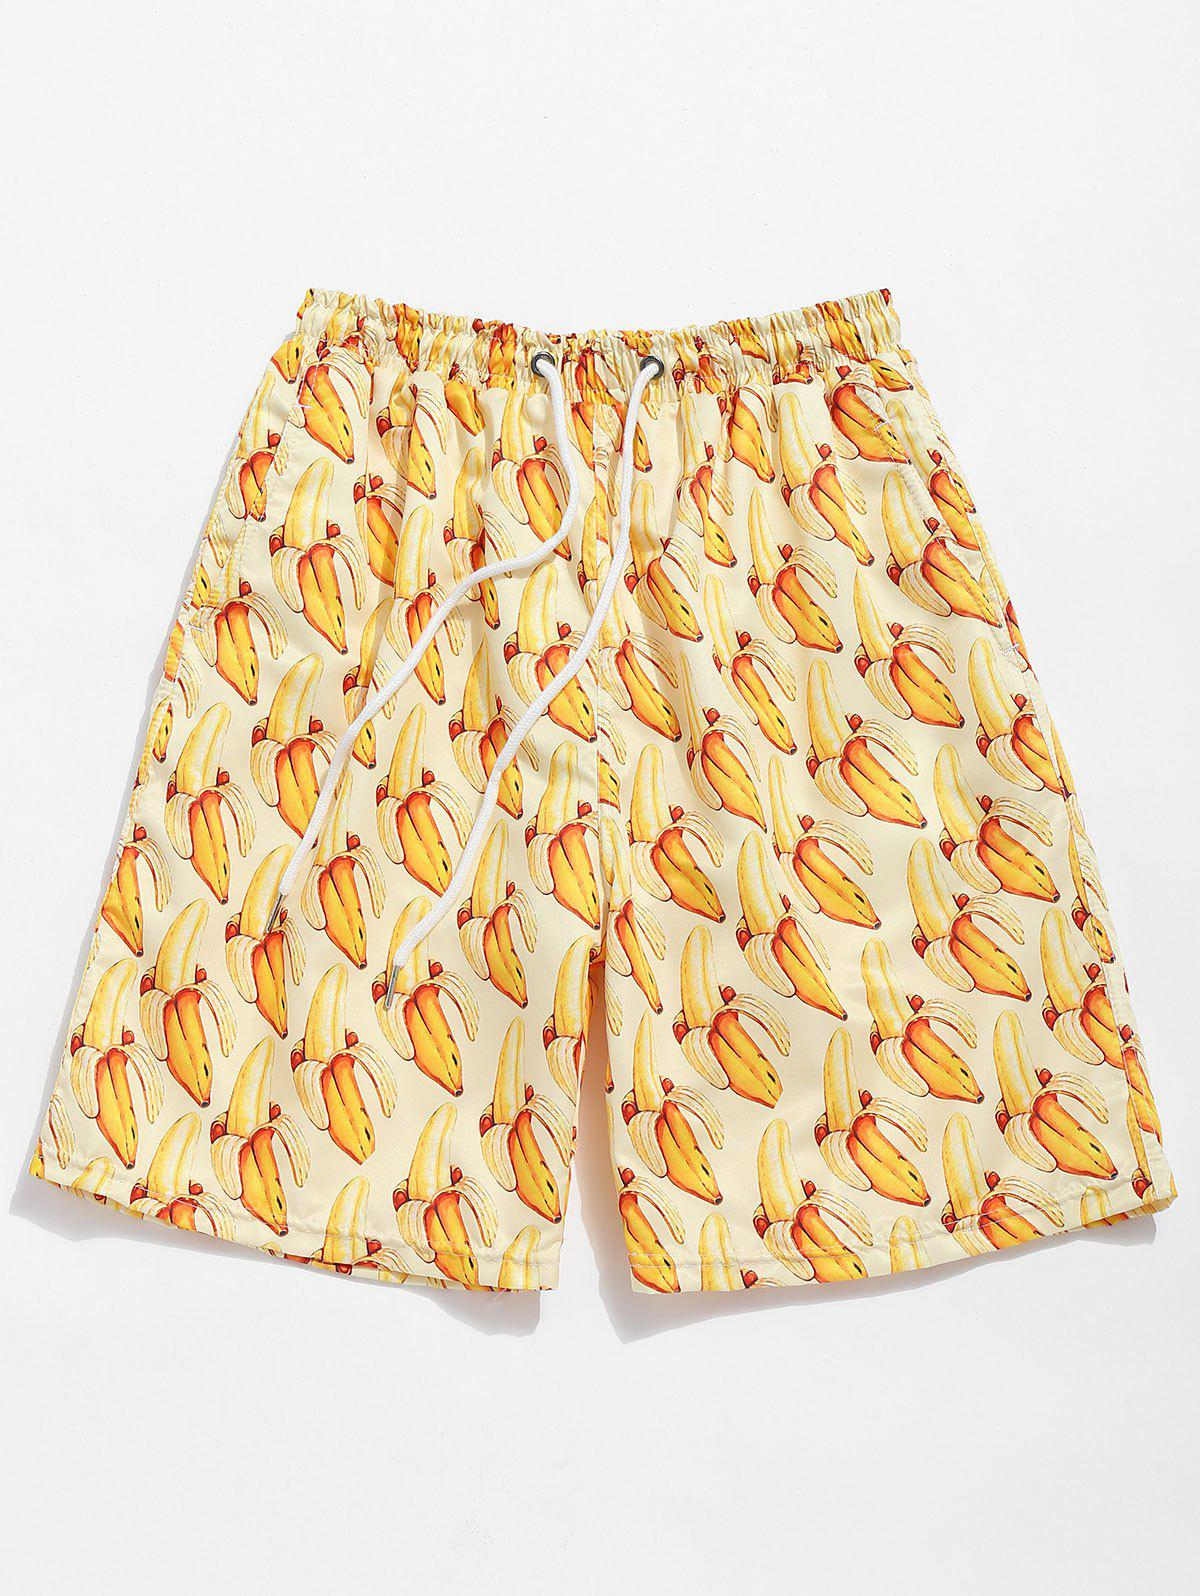 Bananas Print Drawstring Board Shorts